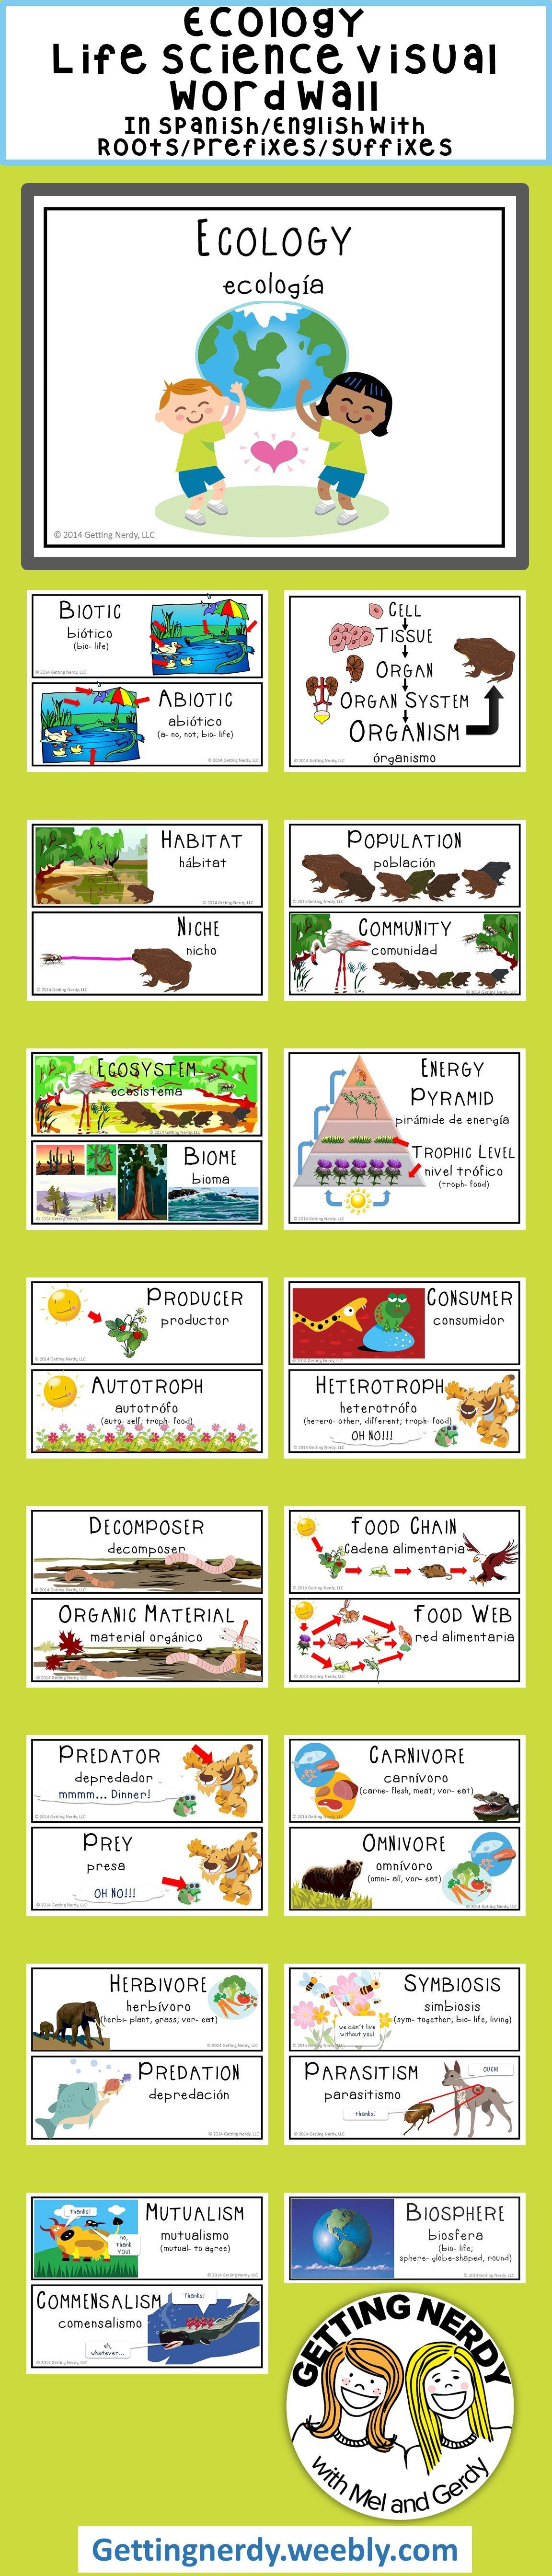 Worksheets Ecology Vocabulary Worksheet ecology word wall science vocabulary and walls pinterest searching for an engaging wordwall how about gettingnerdy with some 30 visual spanisheng